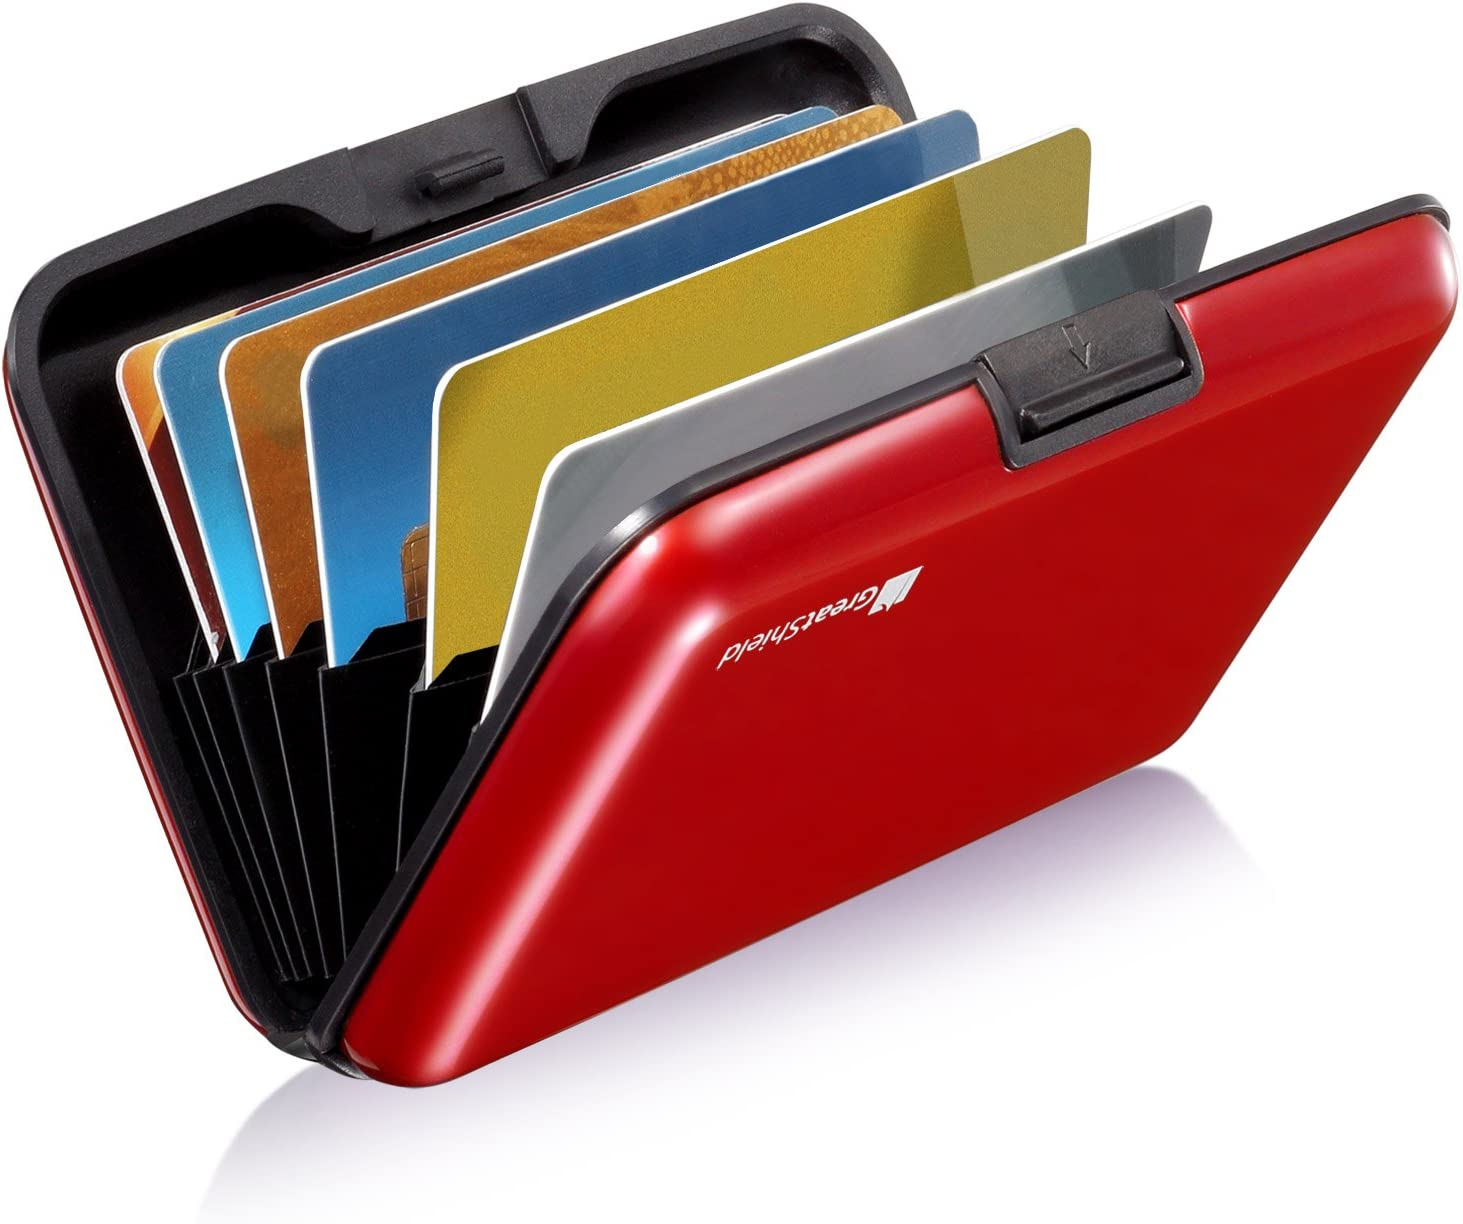 GreatShield RFID Blocking Wallet [8 Slots | Aluminum] Portable Travel Identity ID/Credit Card Safe Protection Card Holder Hard Case for Men and Women (Red)